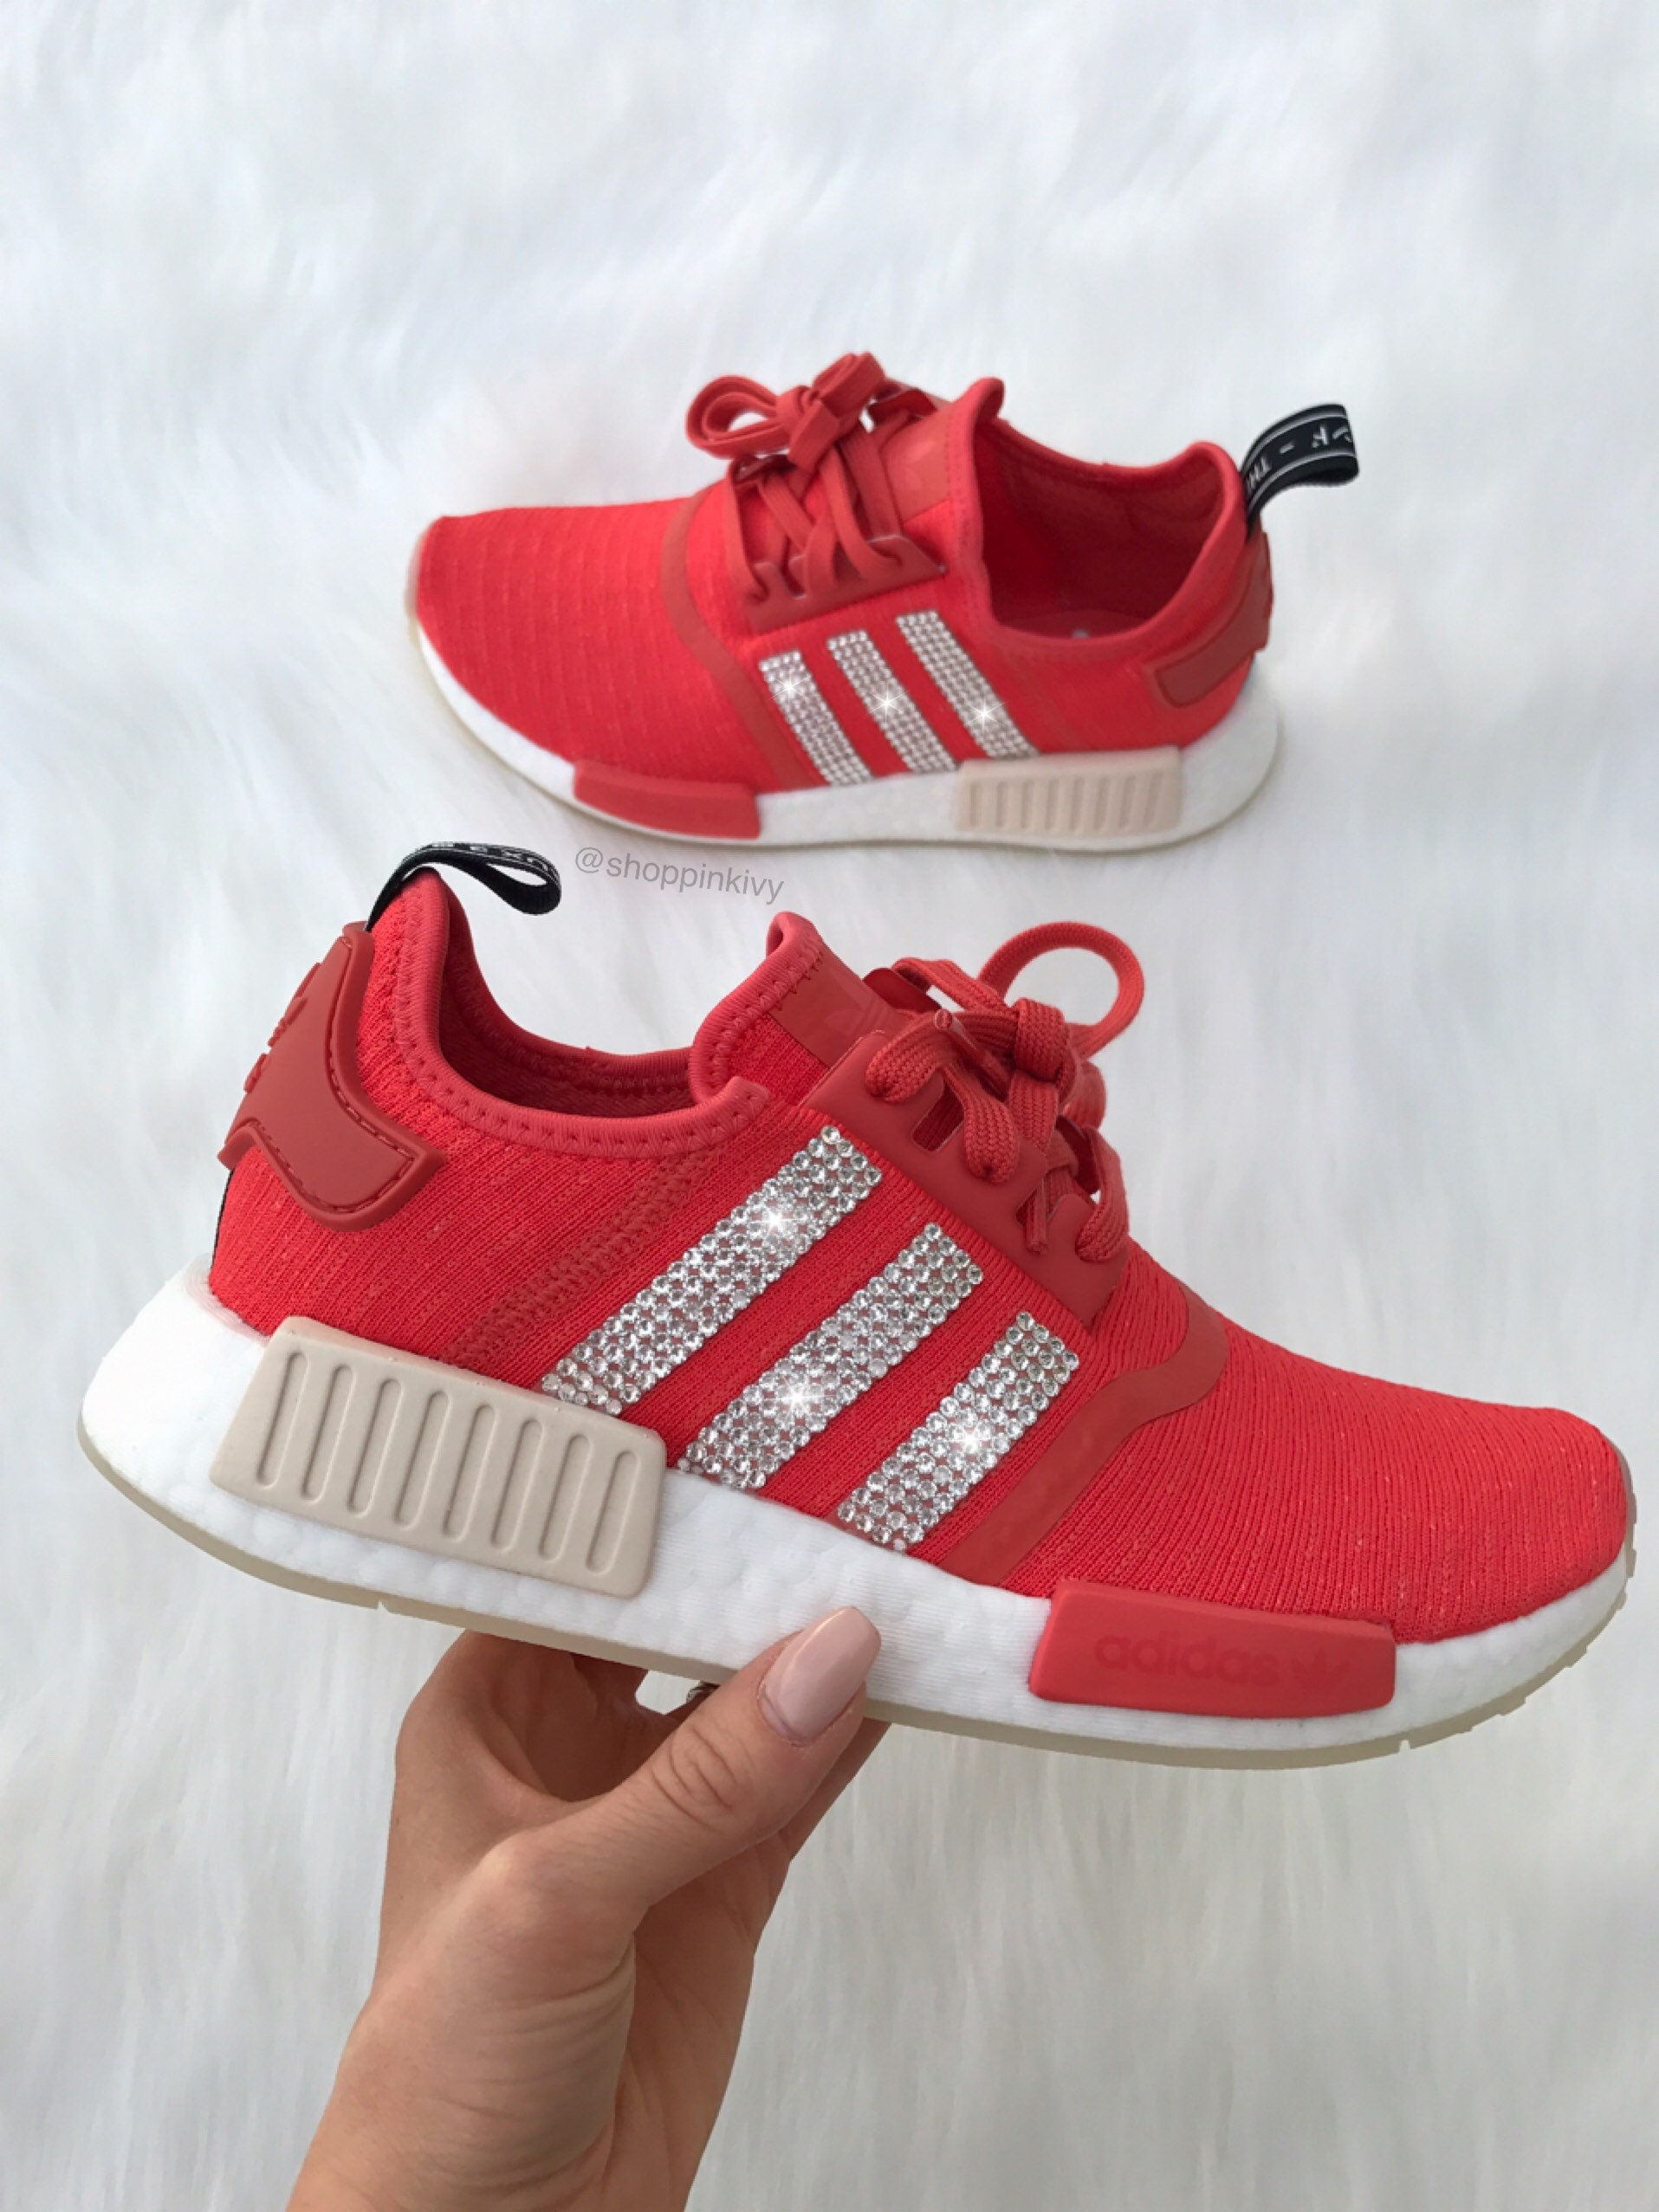 9d64b2ca0 Swarovski Adidas NMD Runner Casual Shoes